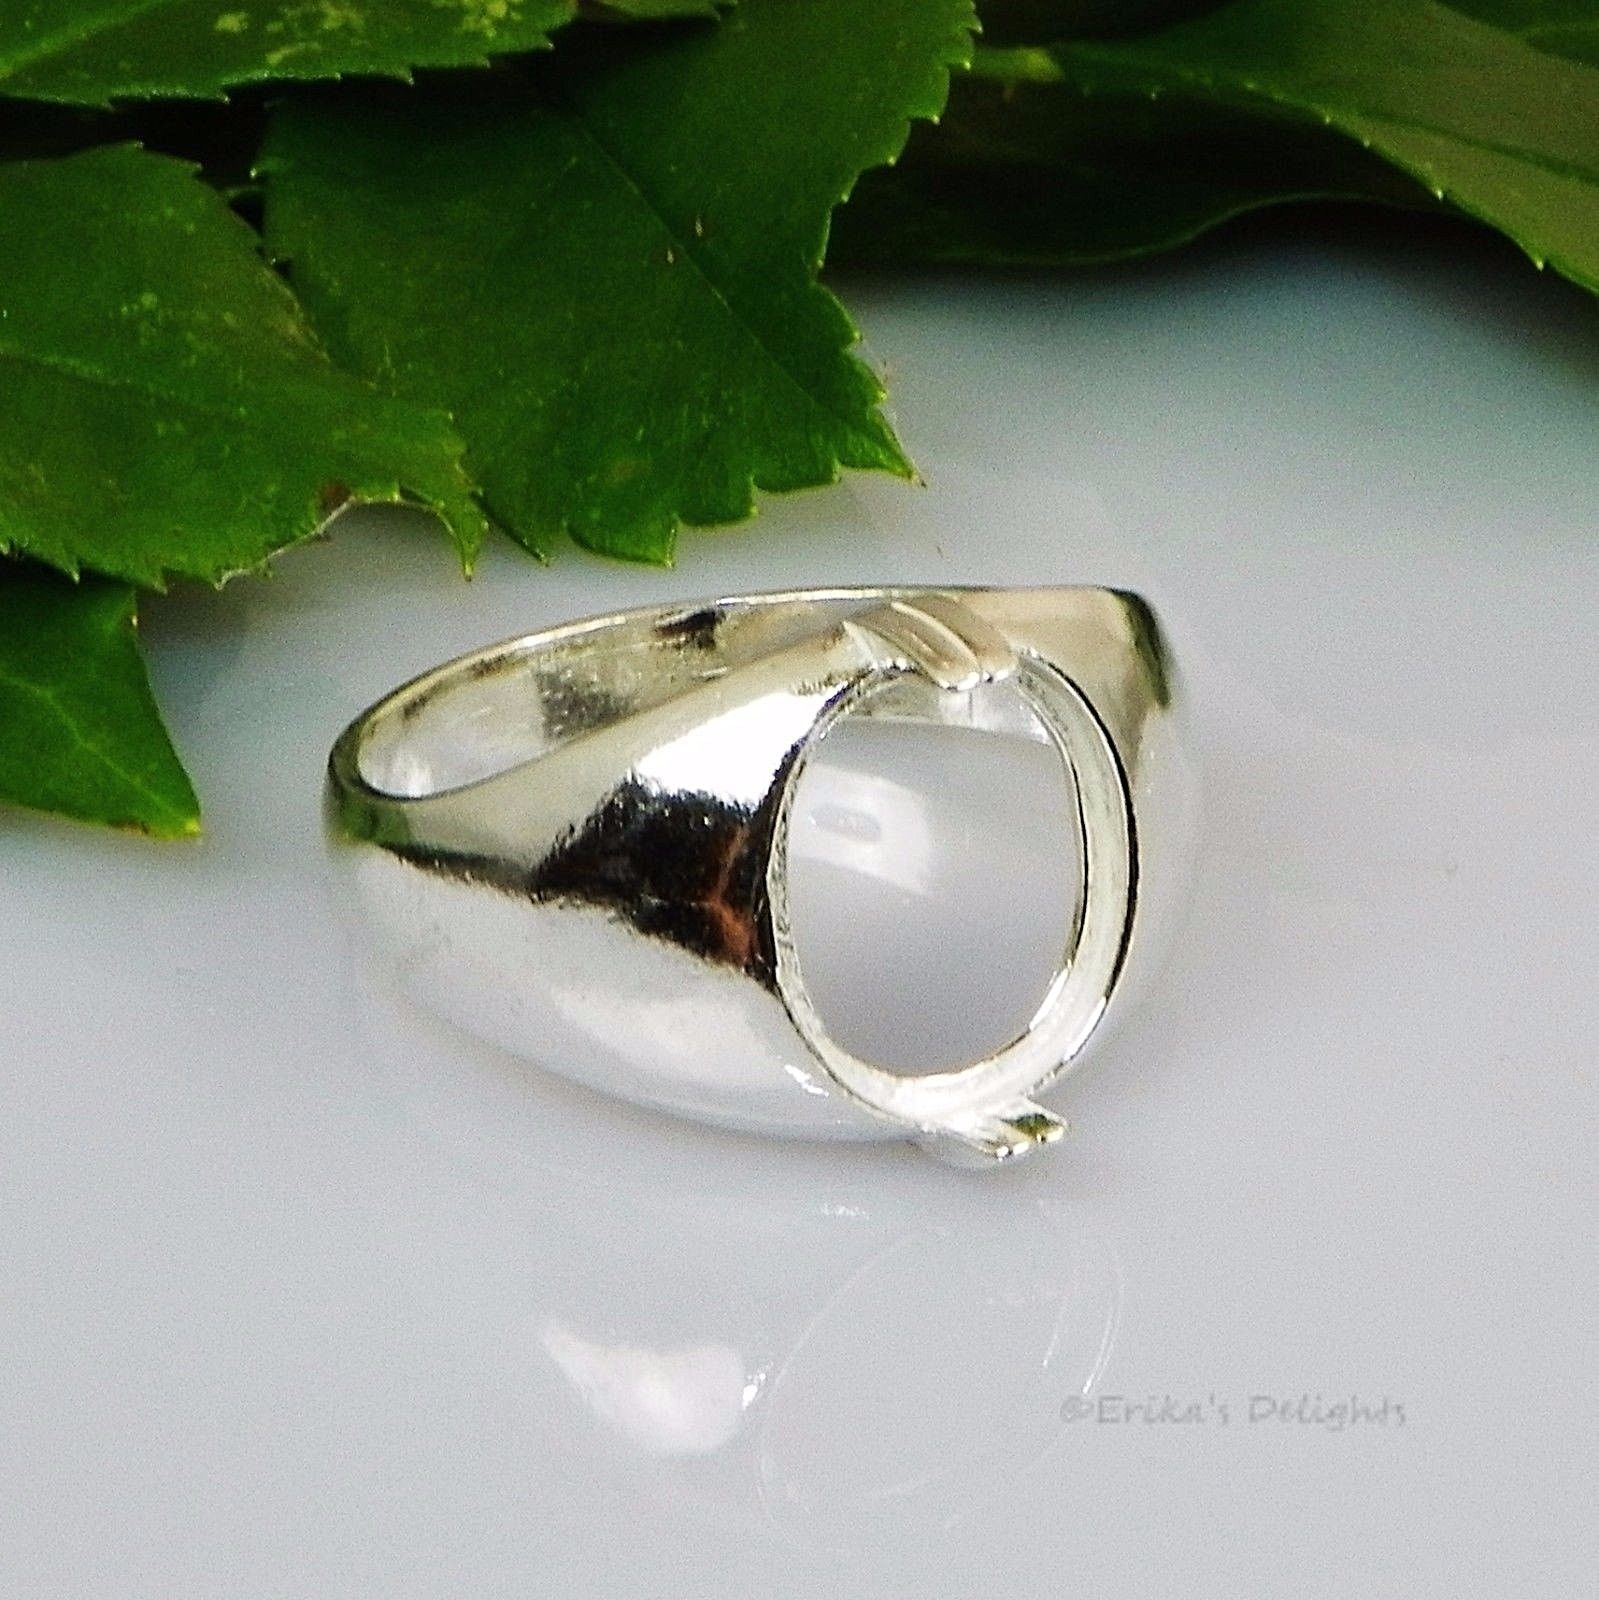 b0af70679c0f80 Ring 67710: (10X8 - 11X9) Oval Mens Cabochon (Cab) Sterling Silver Ring  Setting Id# 163-032 -> BUY IT NOW ONLY: $15.99 on #eBay #cabochon #sterling  #silver ...